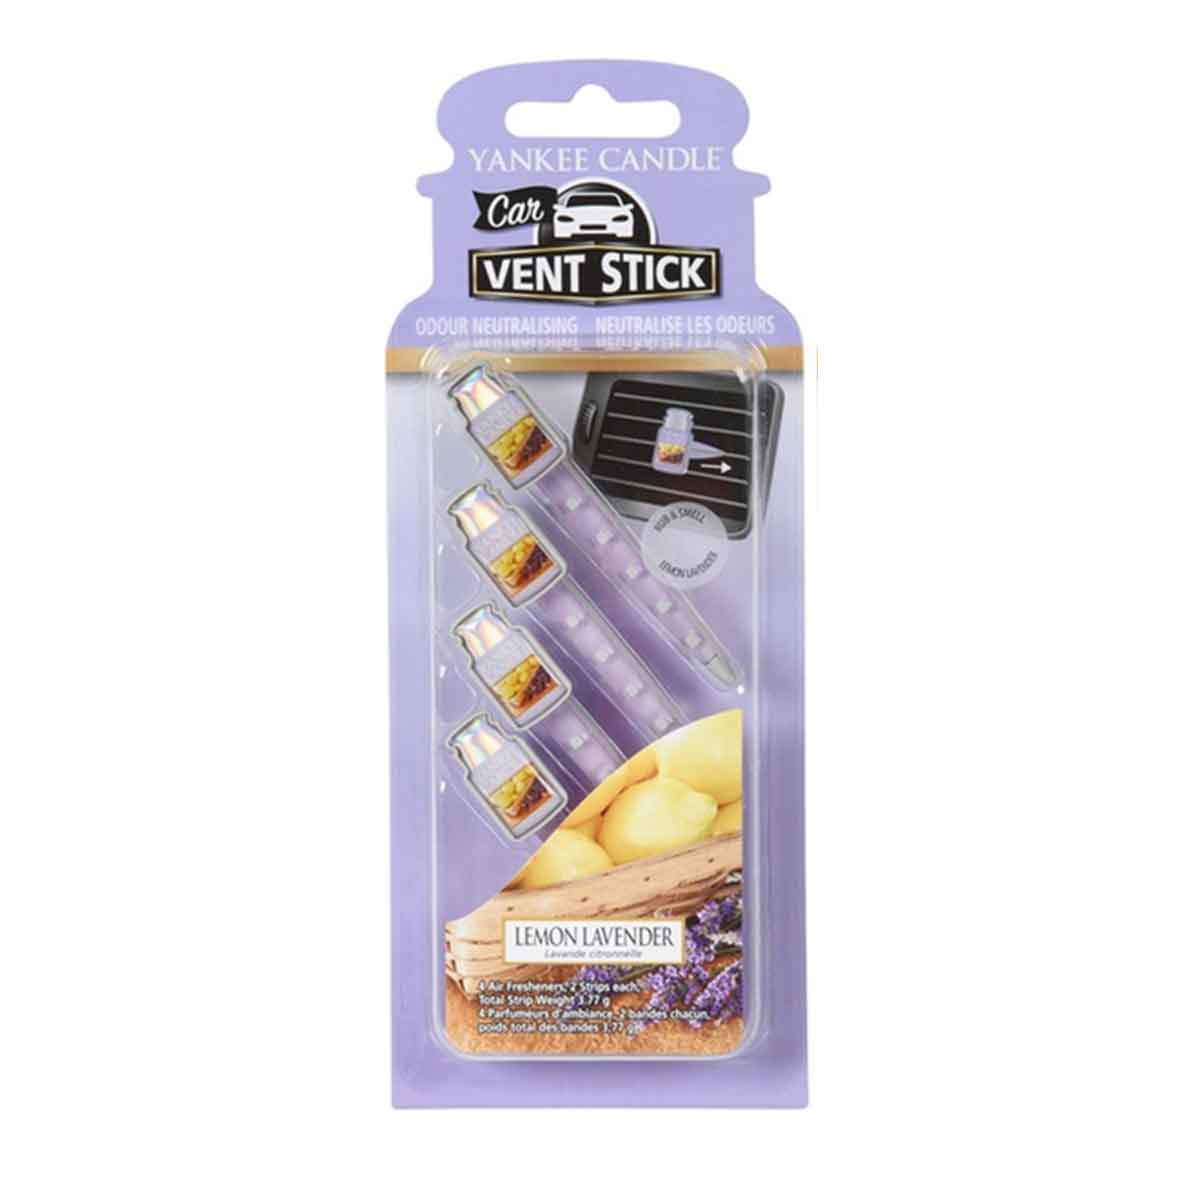 Lemon-Lavender-Vent-Stick